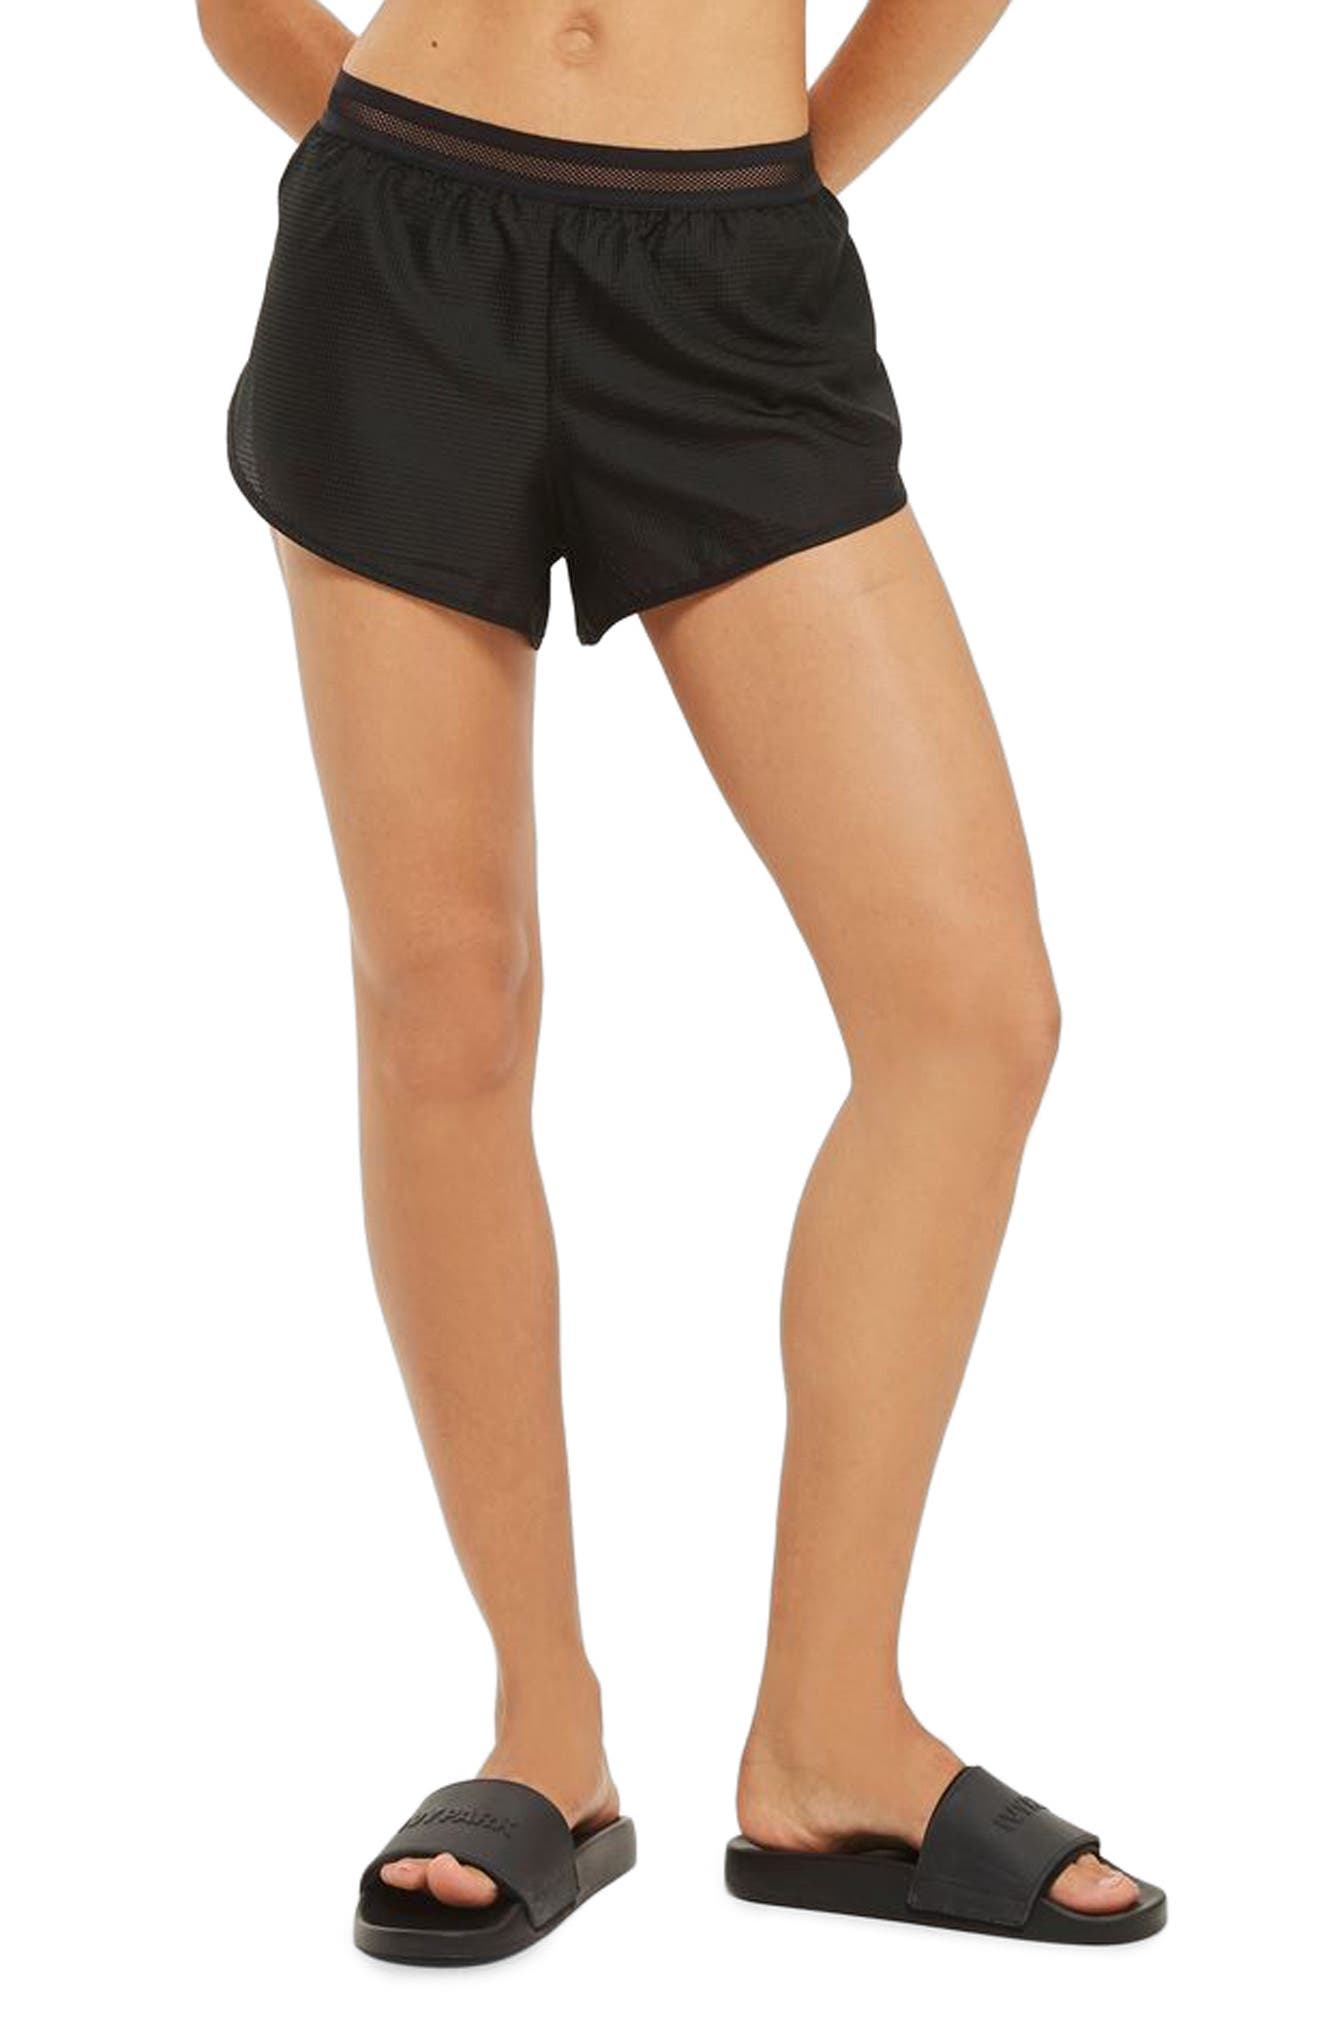 Alternate Image 1 Selected - IVY PARK® Logo Perforated Runner Shorts